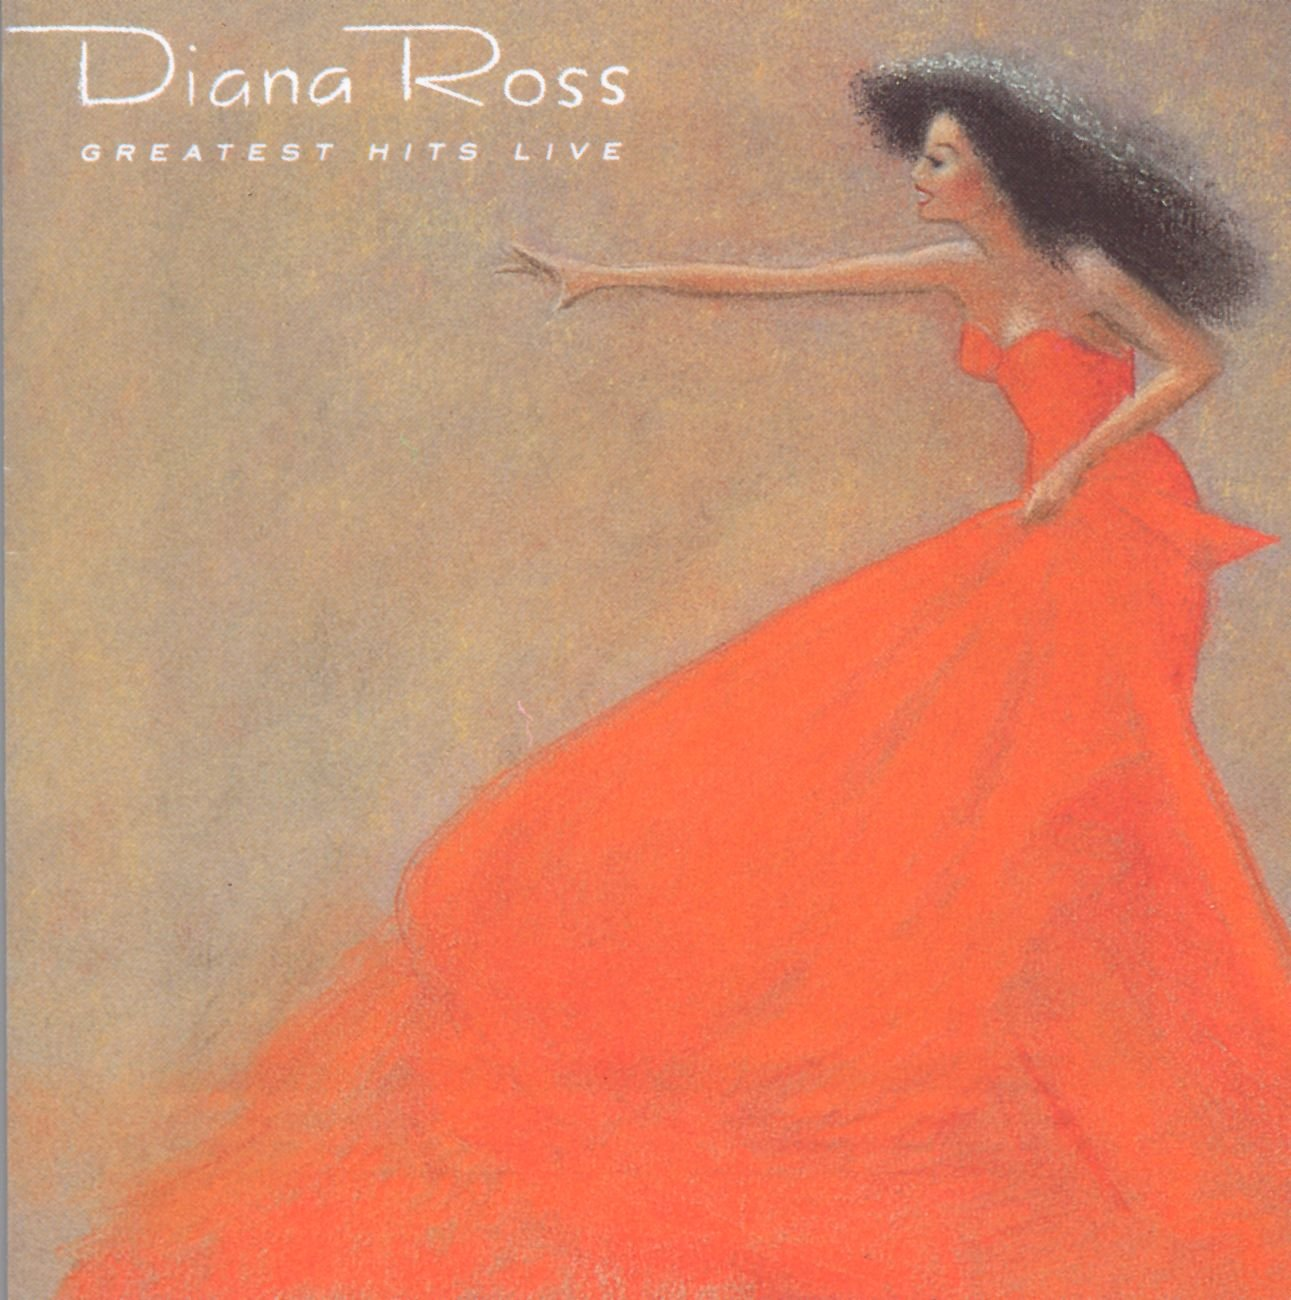 Diana Ross: Greatest Hits Live